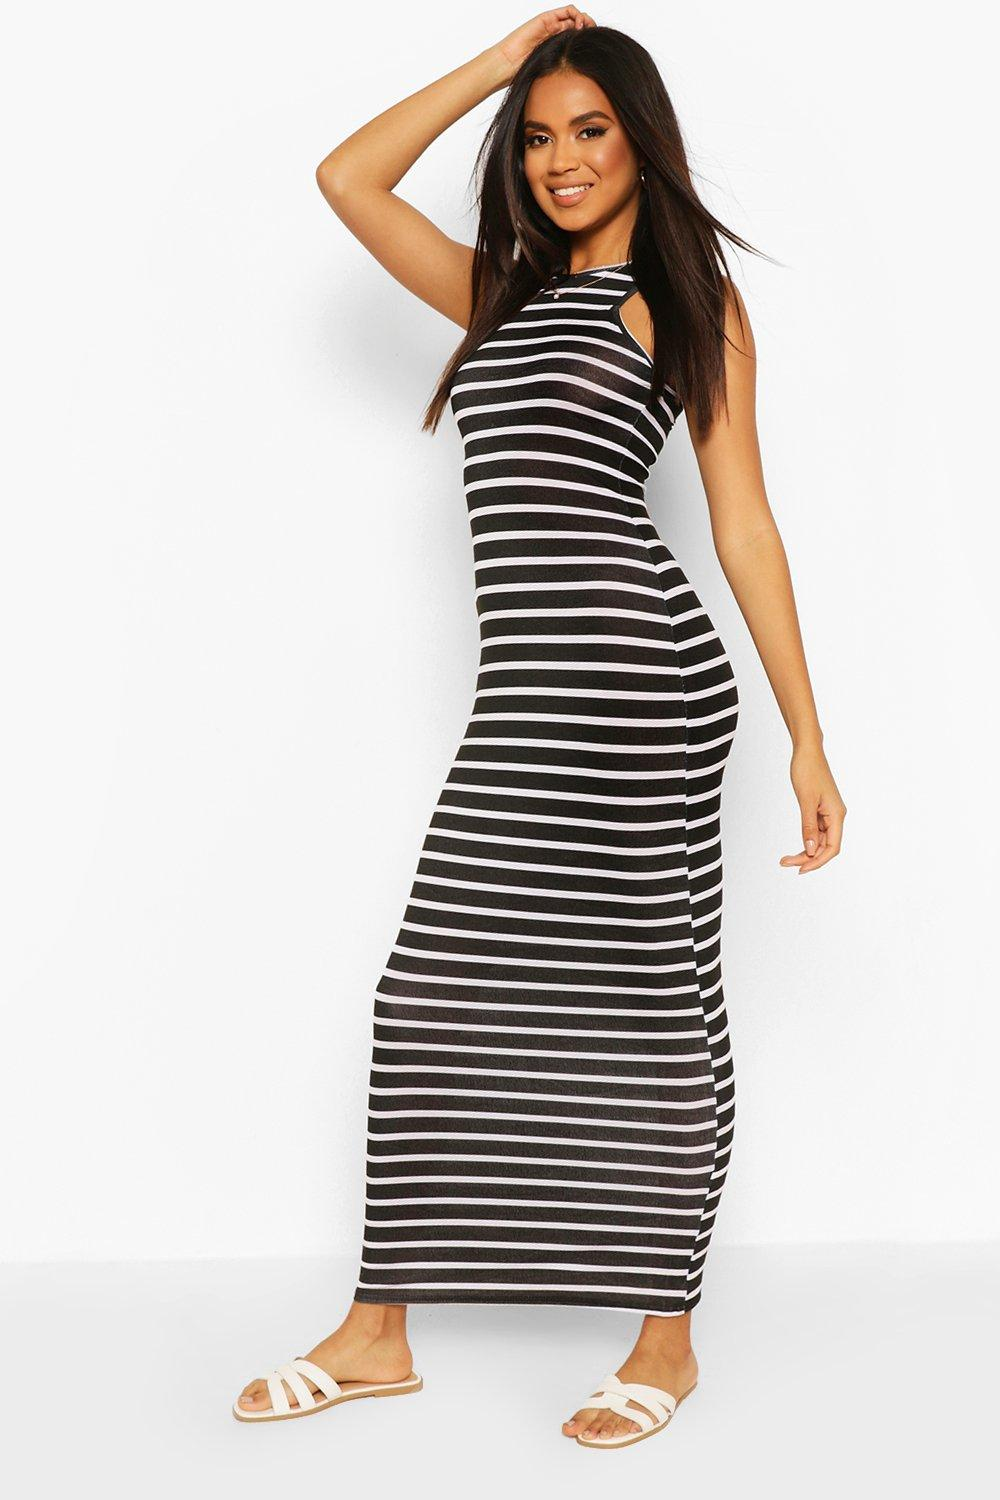 Free shipping BOTH ways on striped dress, from our vast selection of styles. Fast delivery, and 24/7/ real-person service with a smile. Click or call